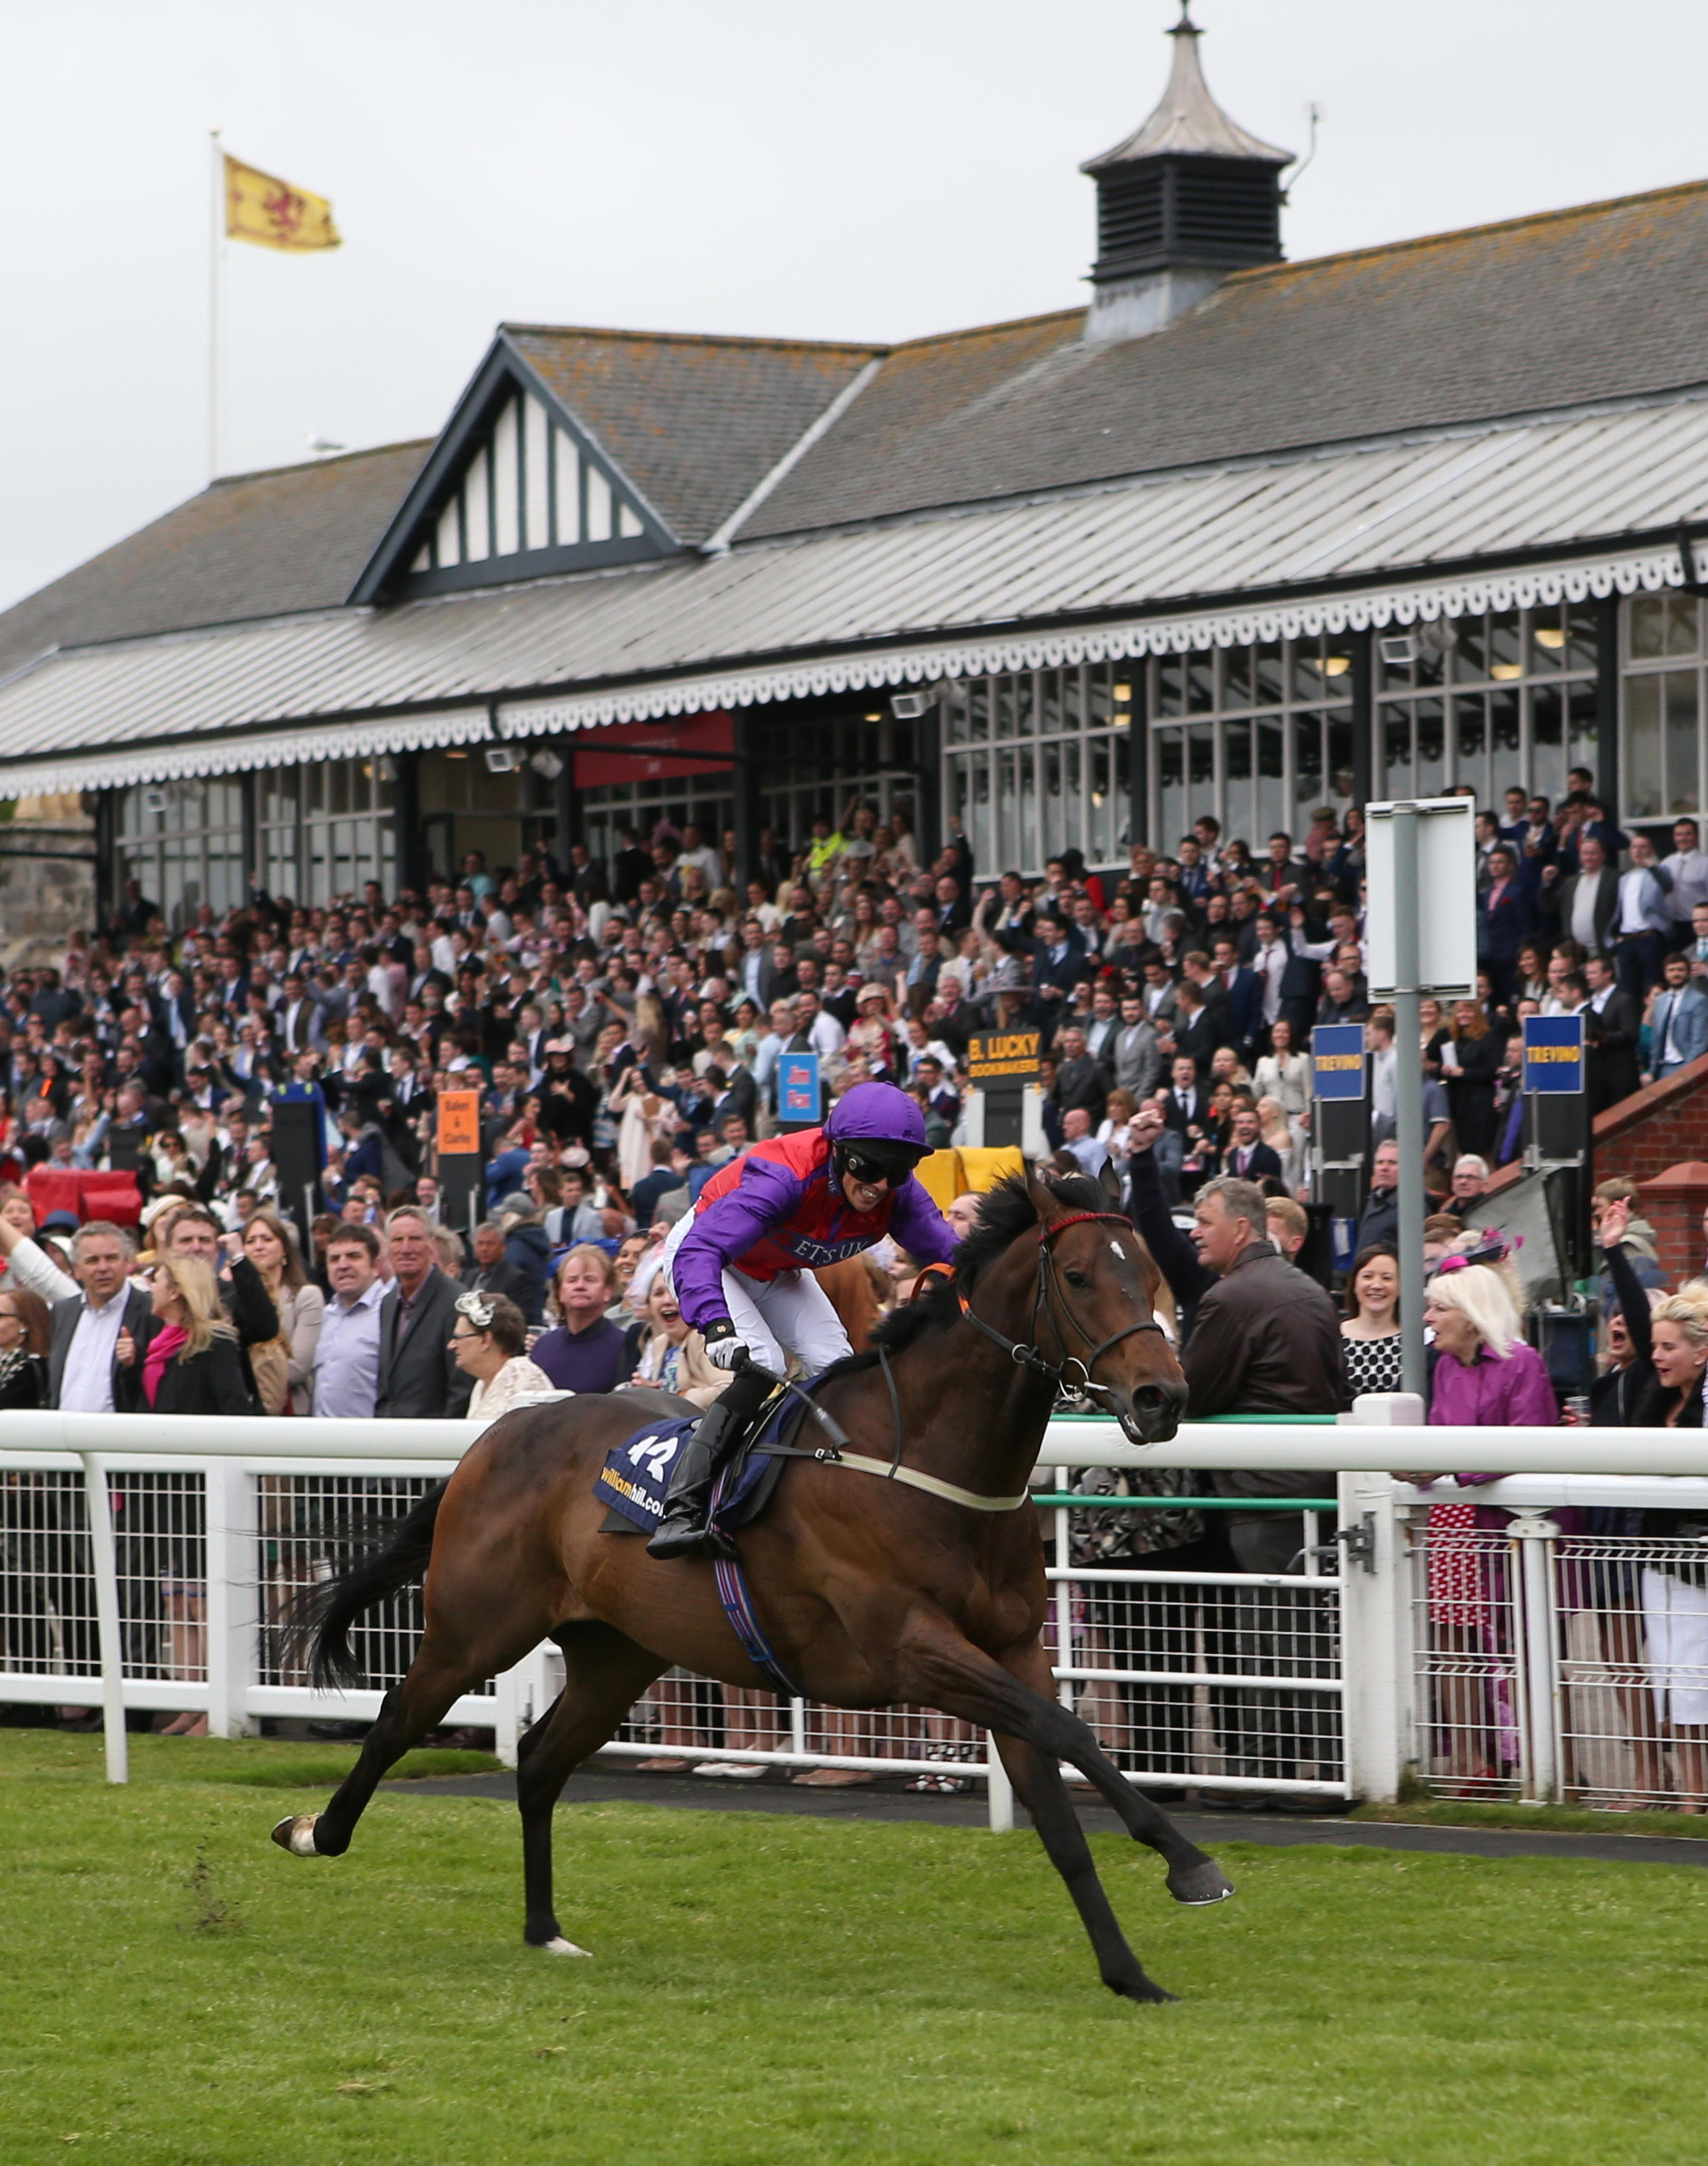 Musselburgh plays host the main action on Saturday